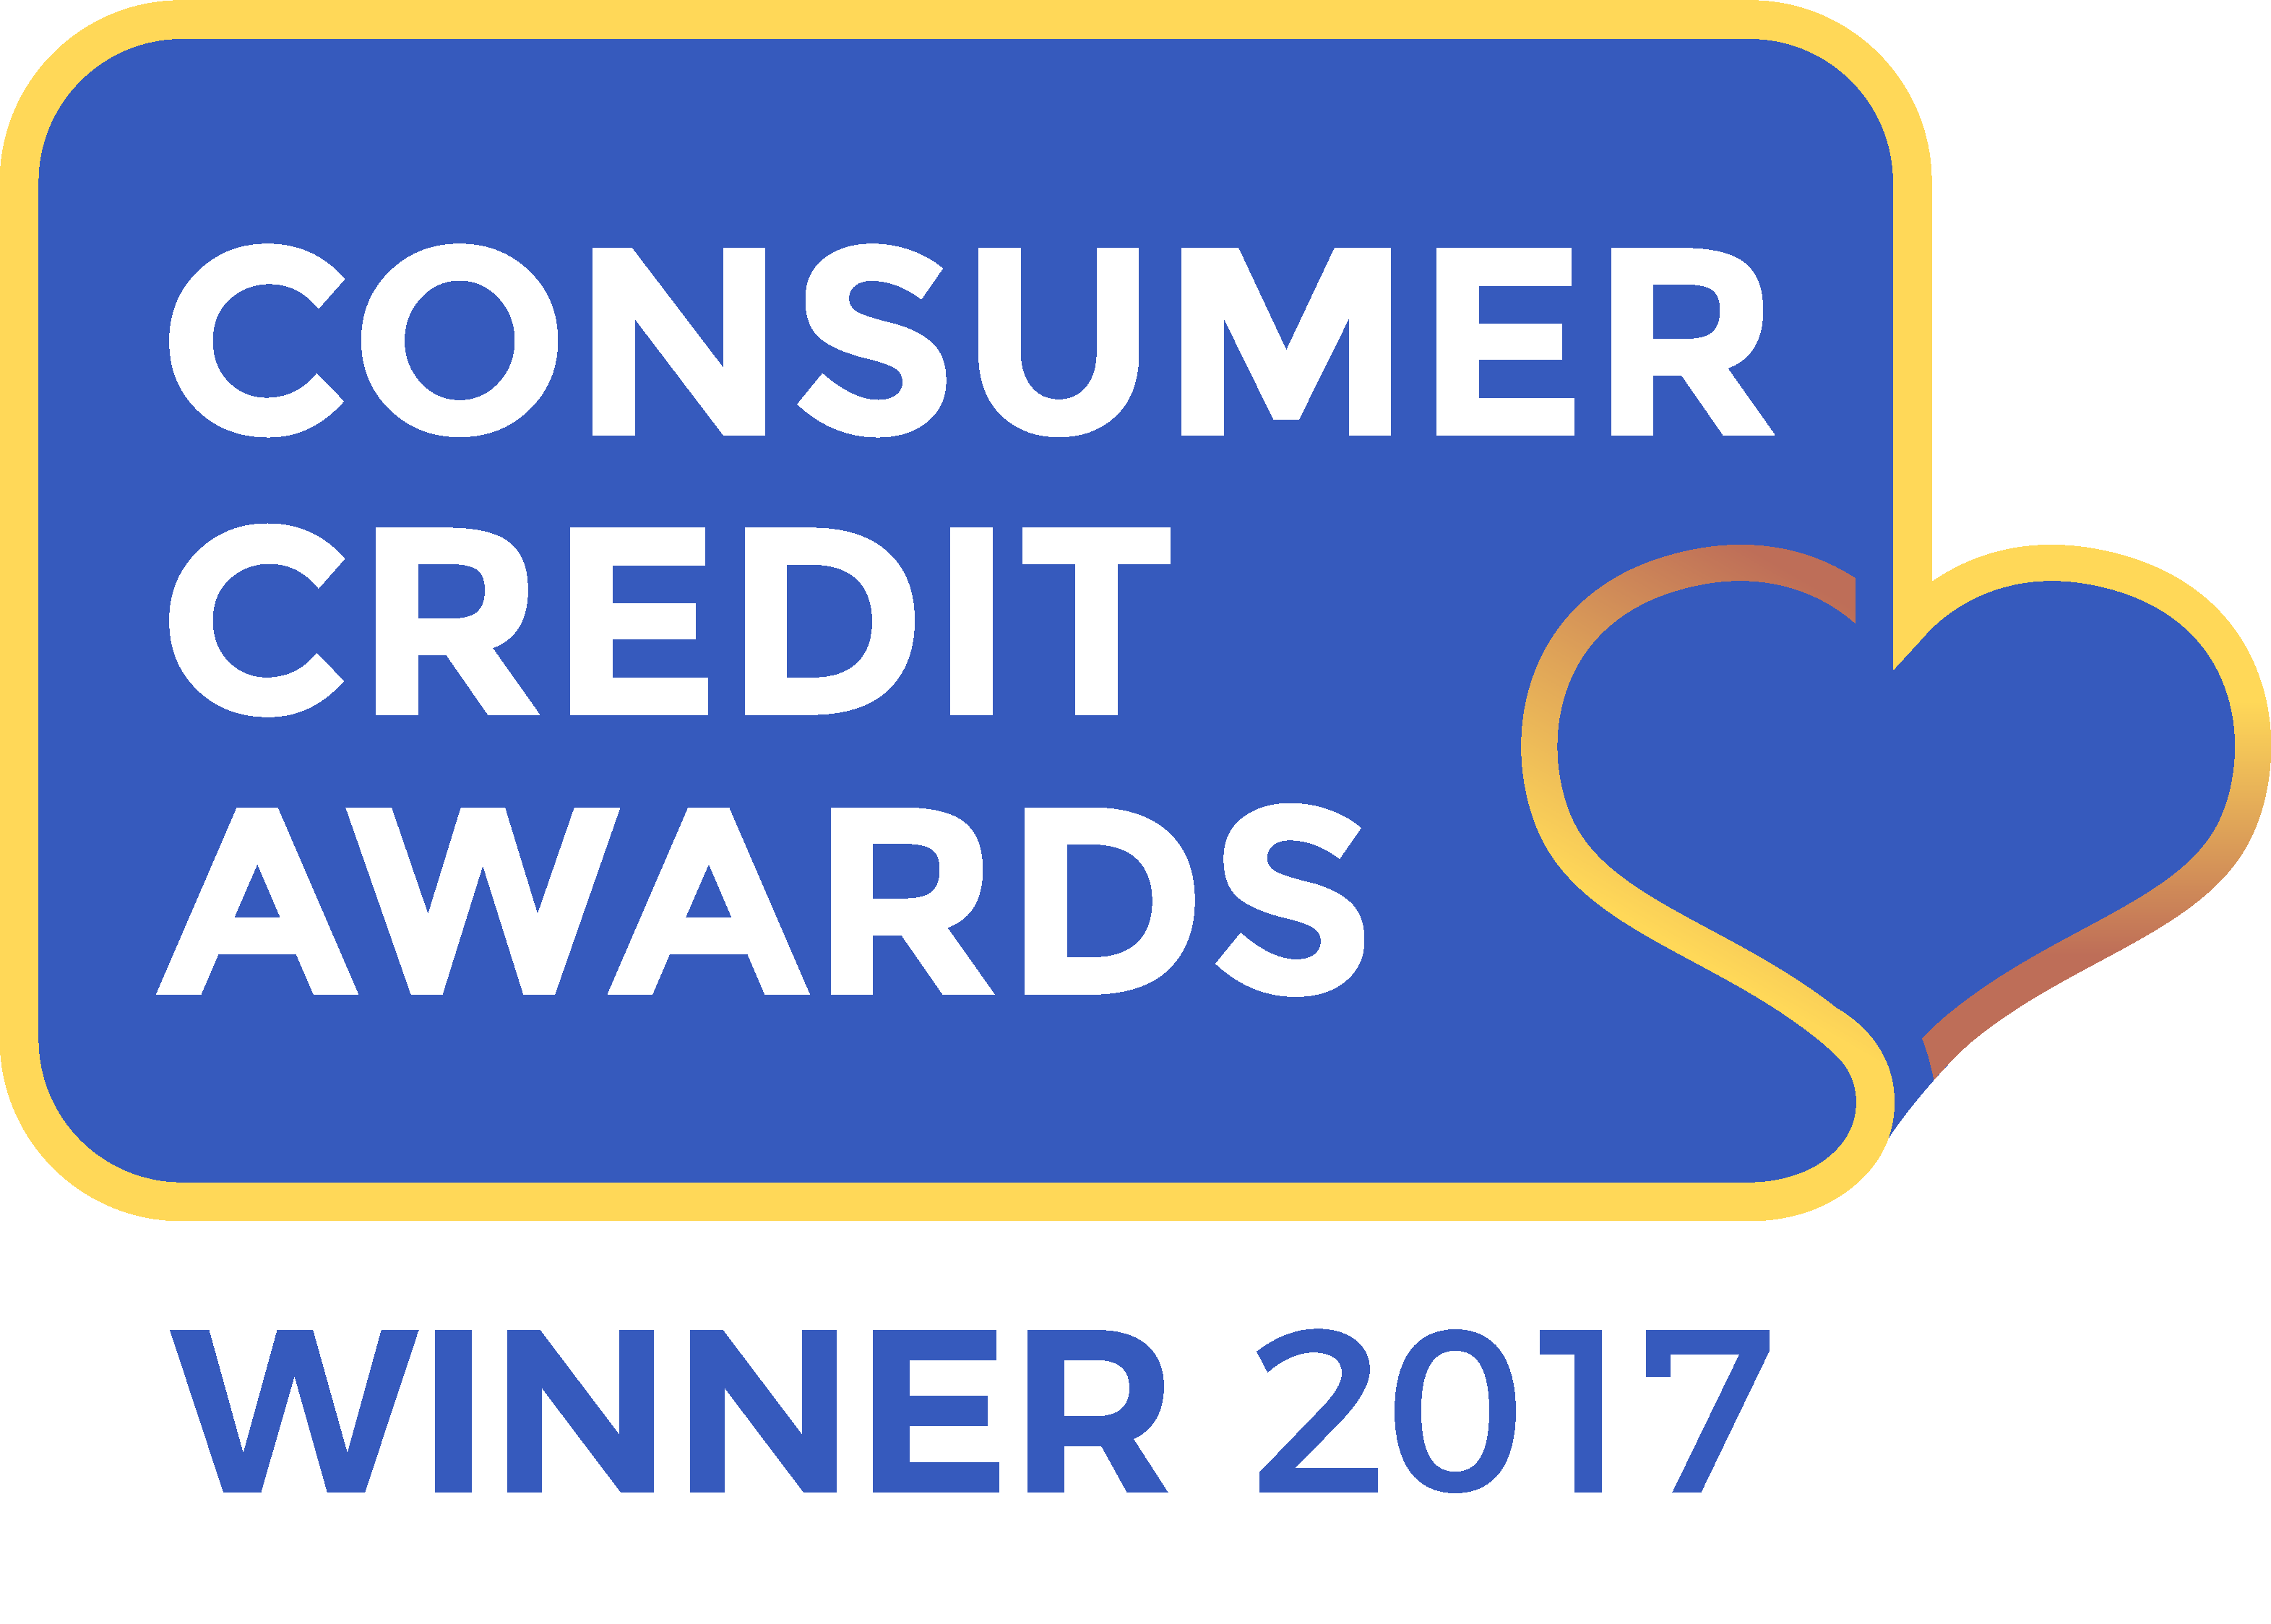 Best Guarantor Loan provider, Consumer Credit Awards 2017